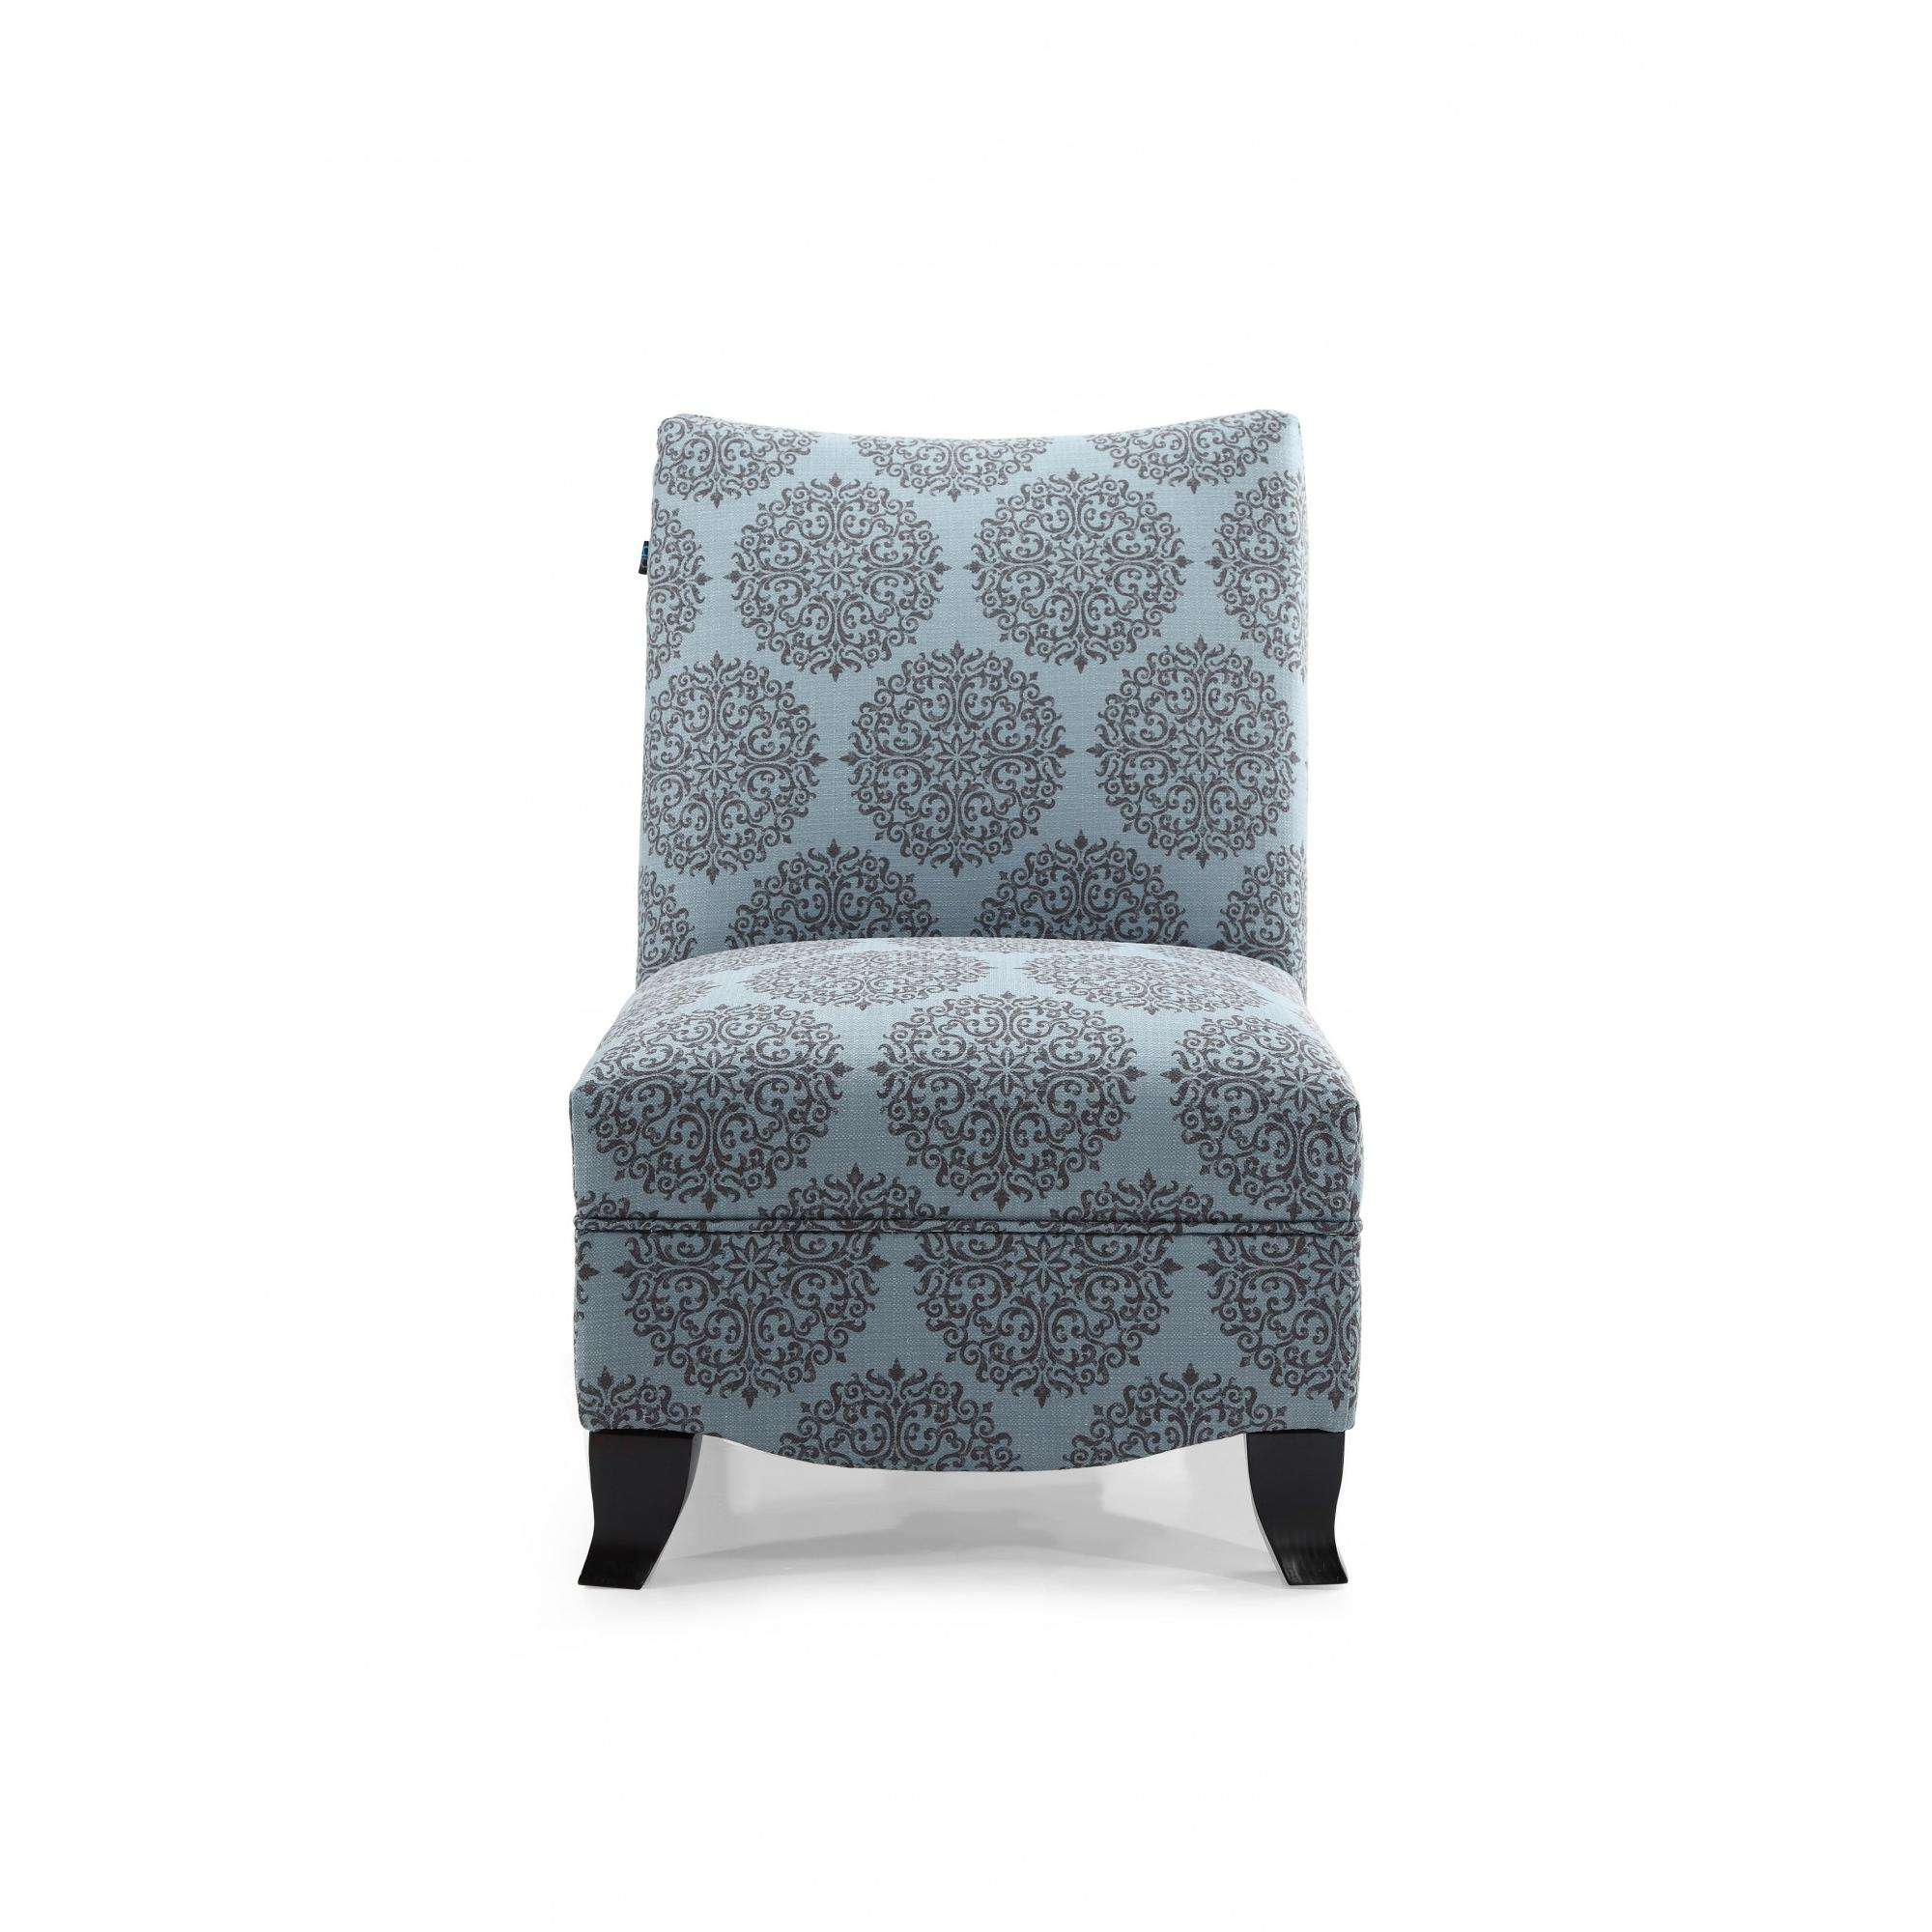 Donovan Gabrielle Upholstered Accent Chair, Multiple Colors